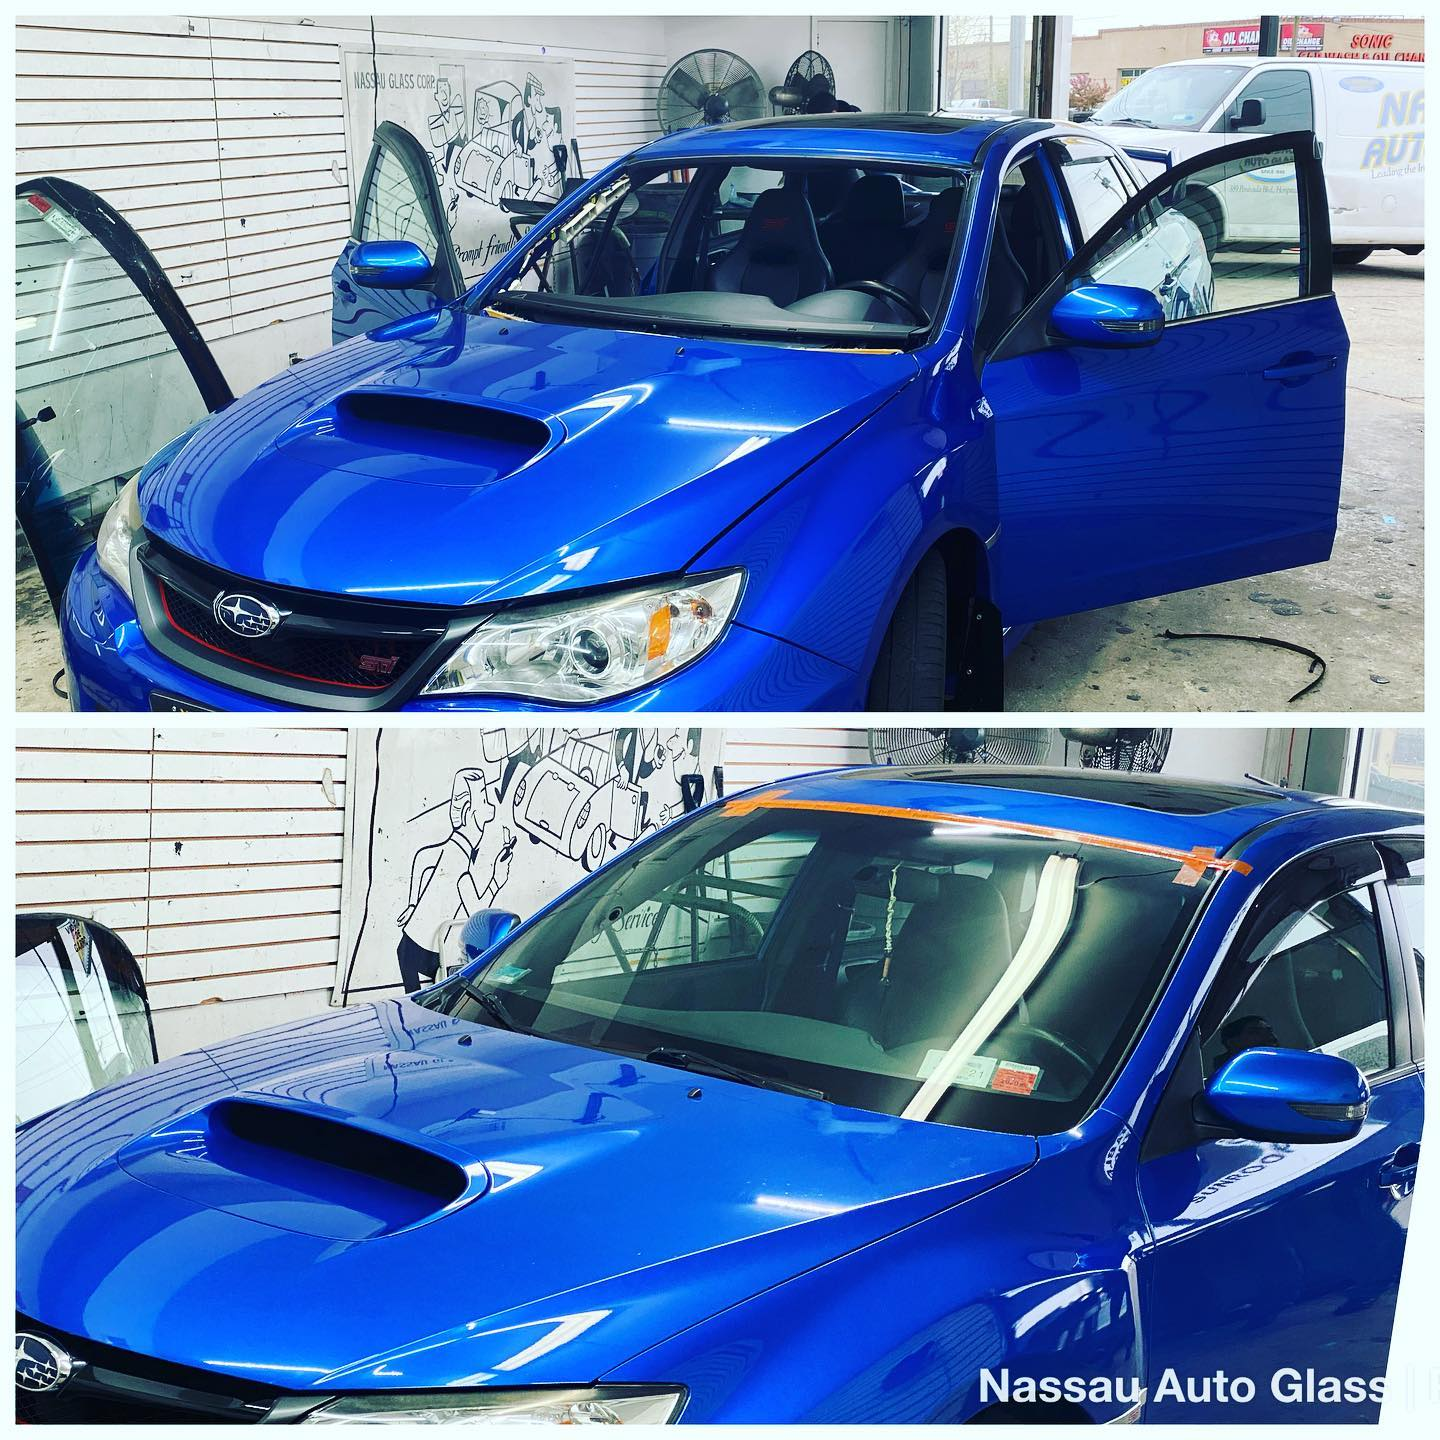 Nassau Auto Glass Services: Before & After Picture 11